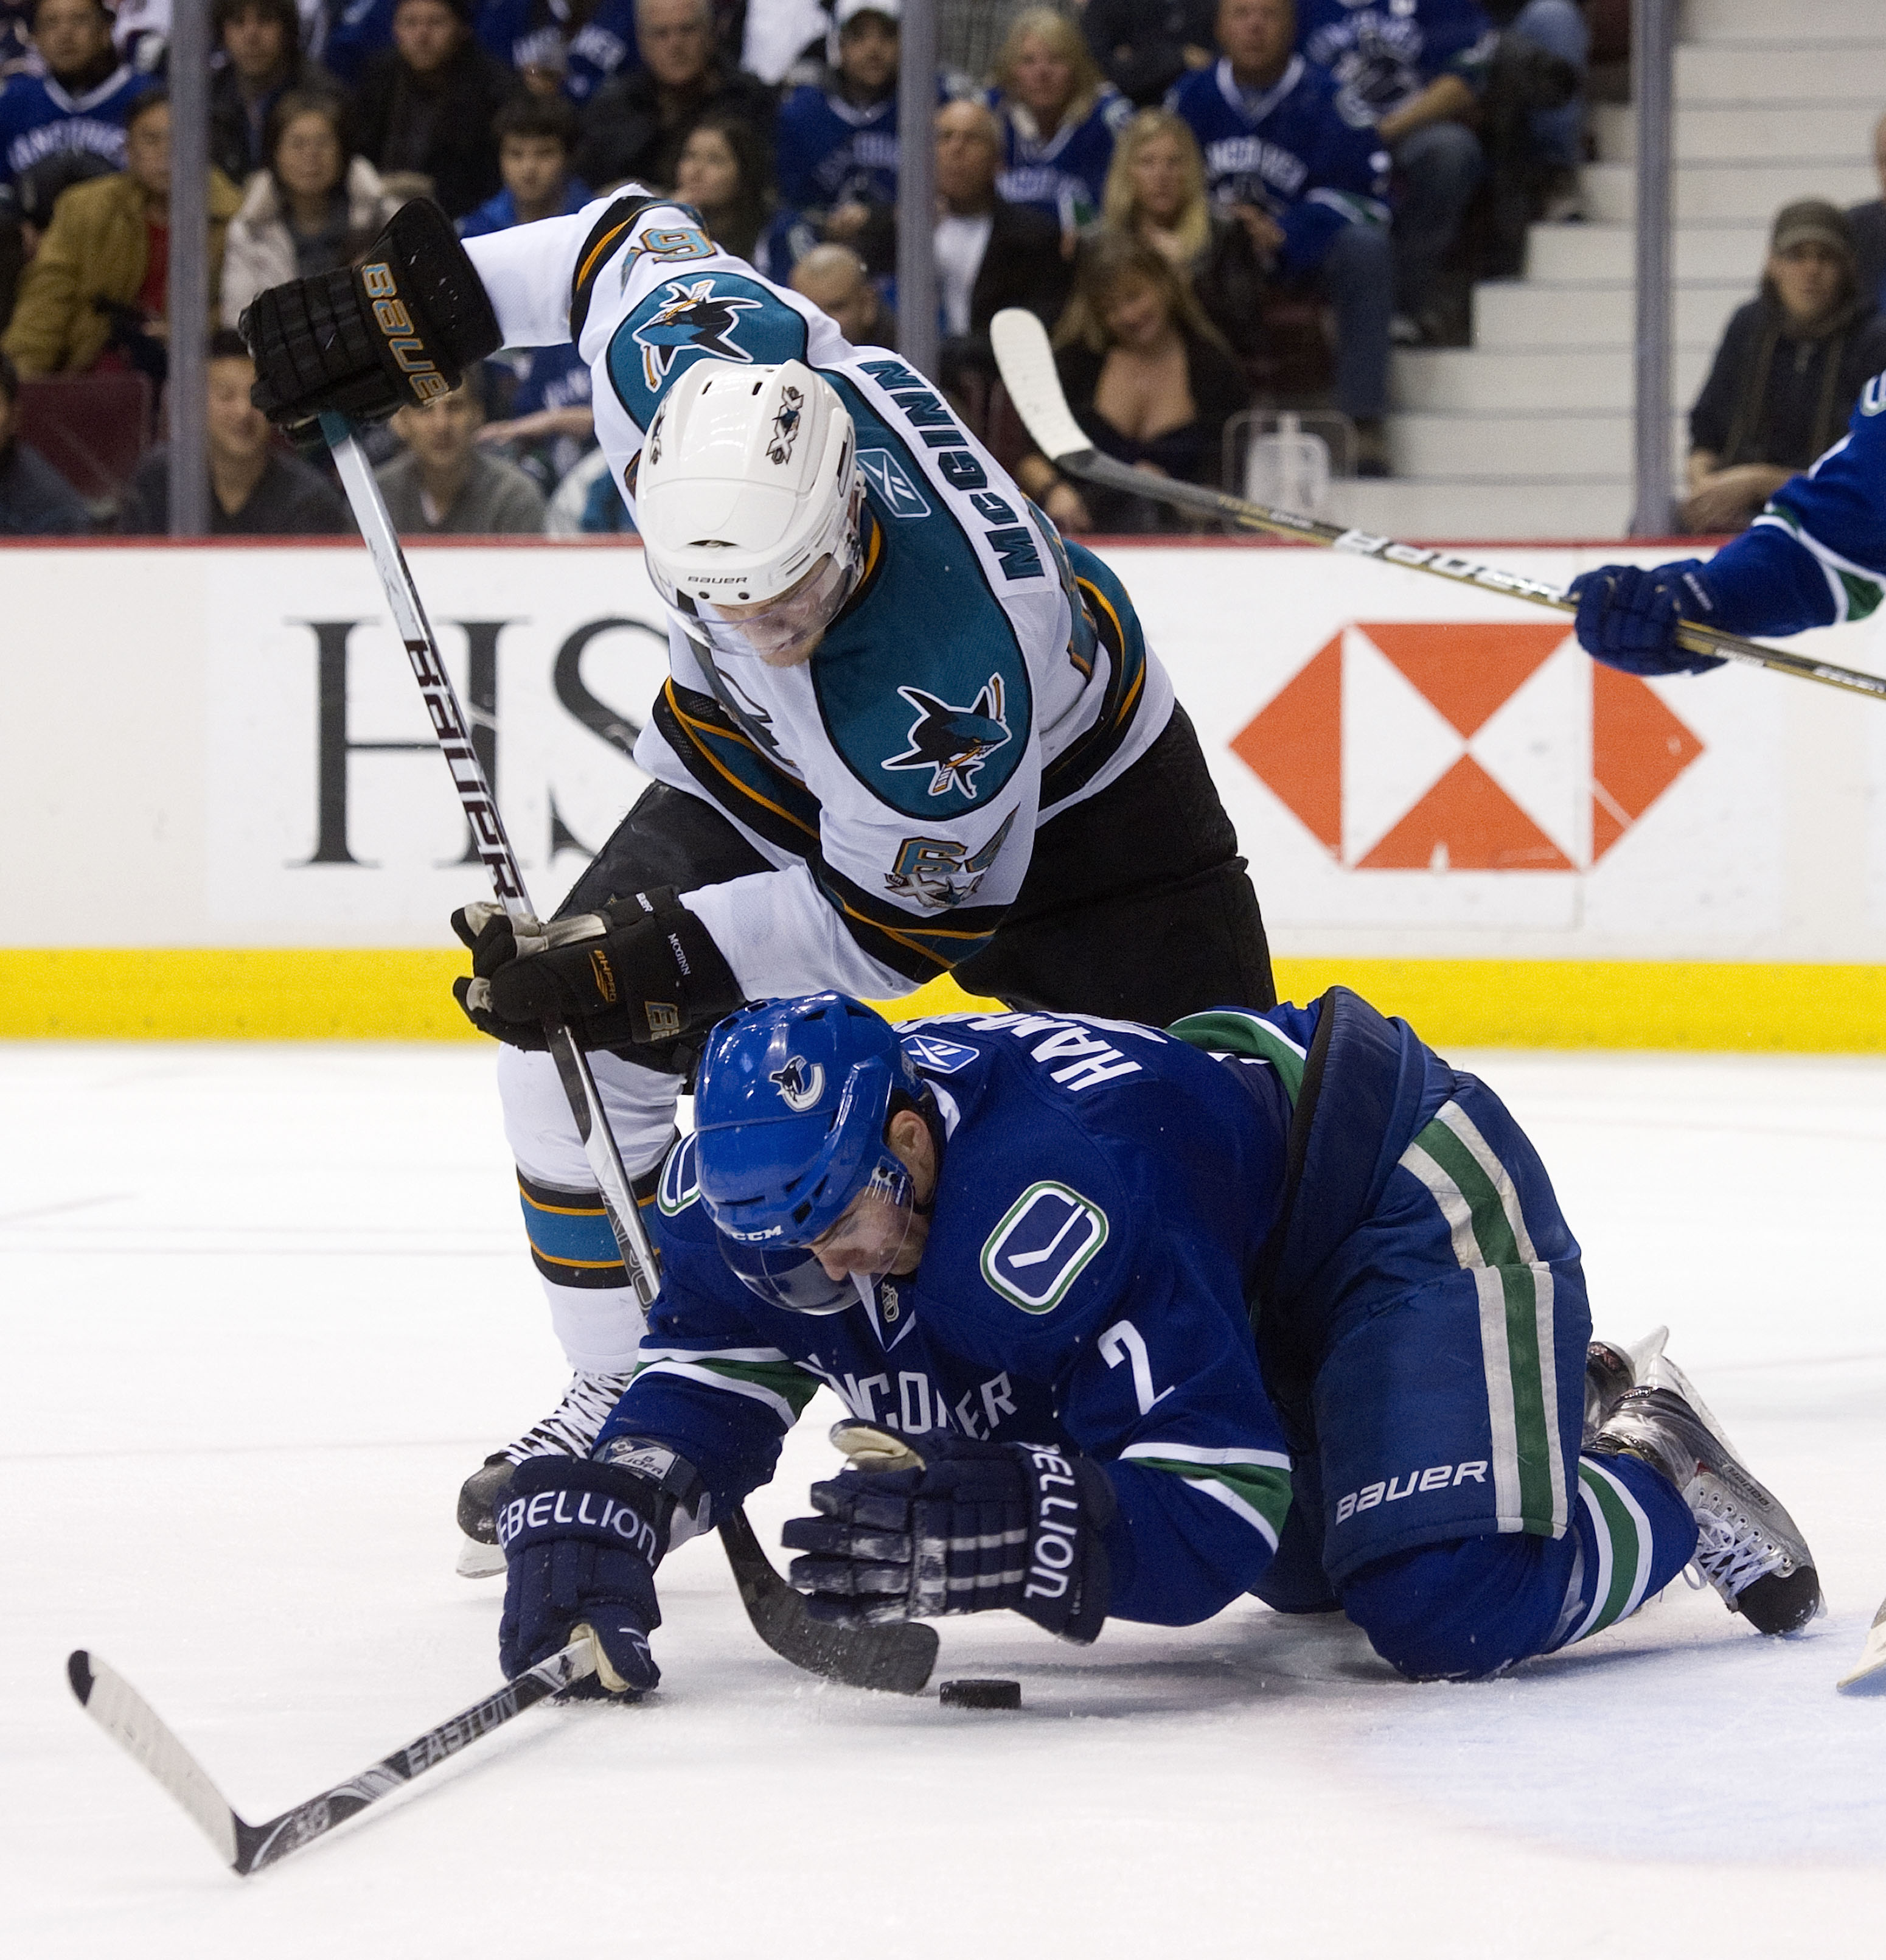 VANCOUVER, CANADA - JANUARY 20: Dan Hamhuis #2 of the Vancouver Canucks tries to cover up the puck during a scramble while Jamie McGinn #64 of the San Jose Sharks tries to dig it loose during the third period in NHL action on January 20, 2011 at Rogers Ar